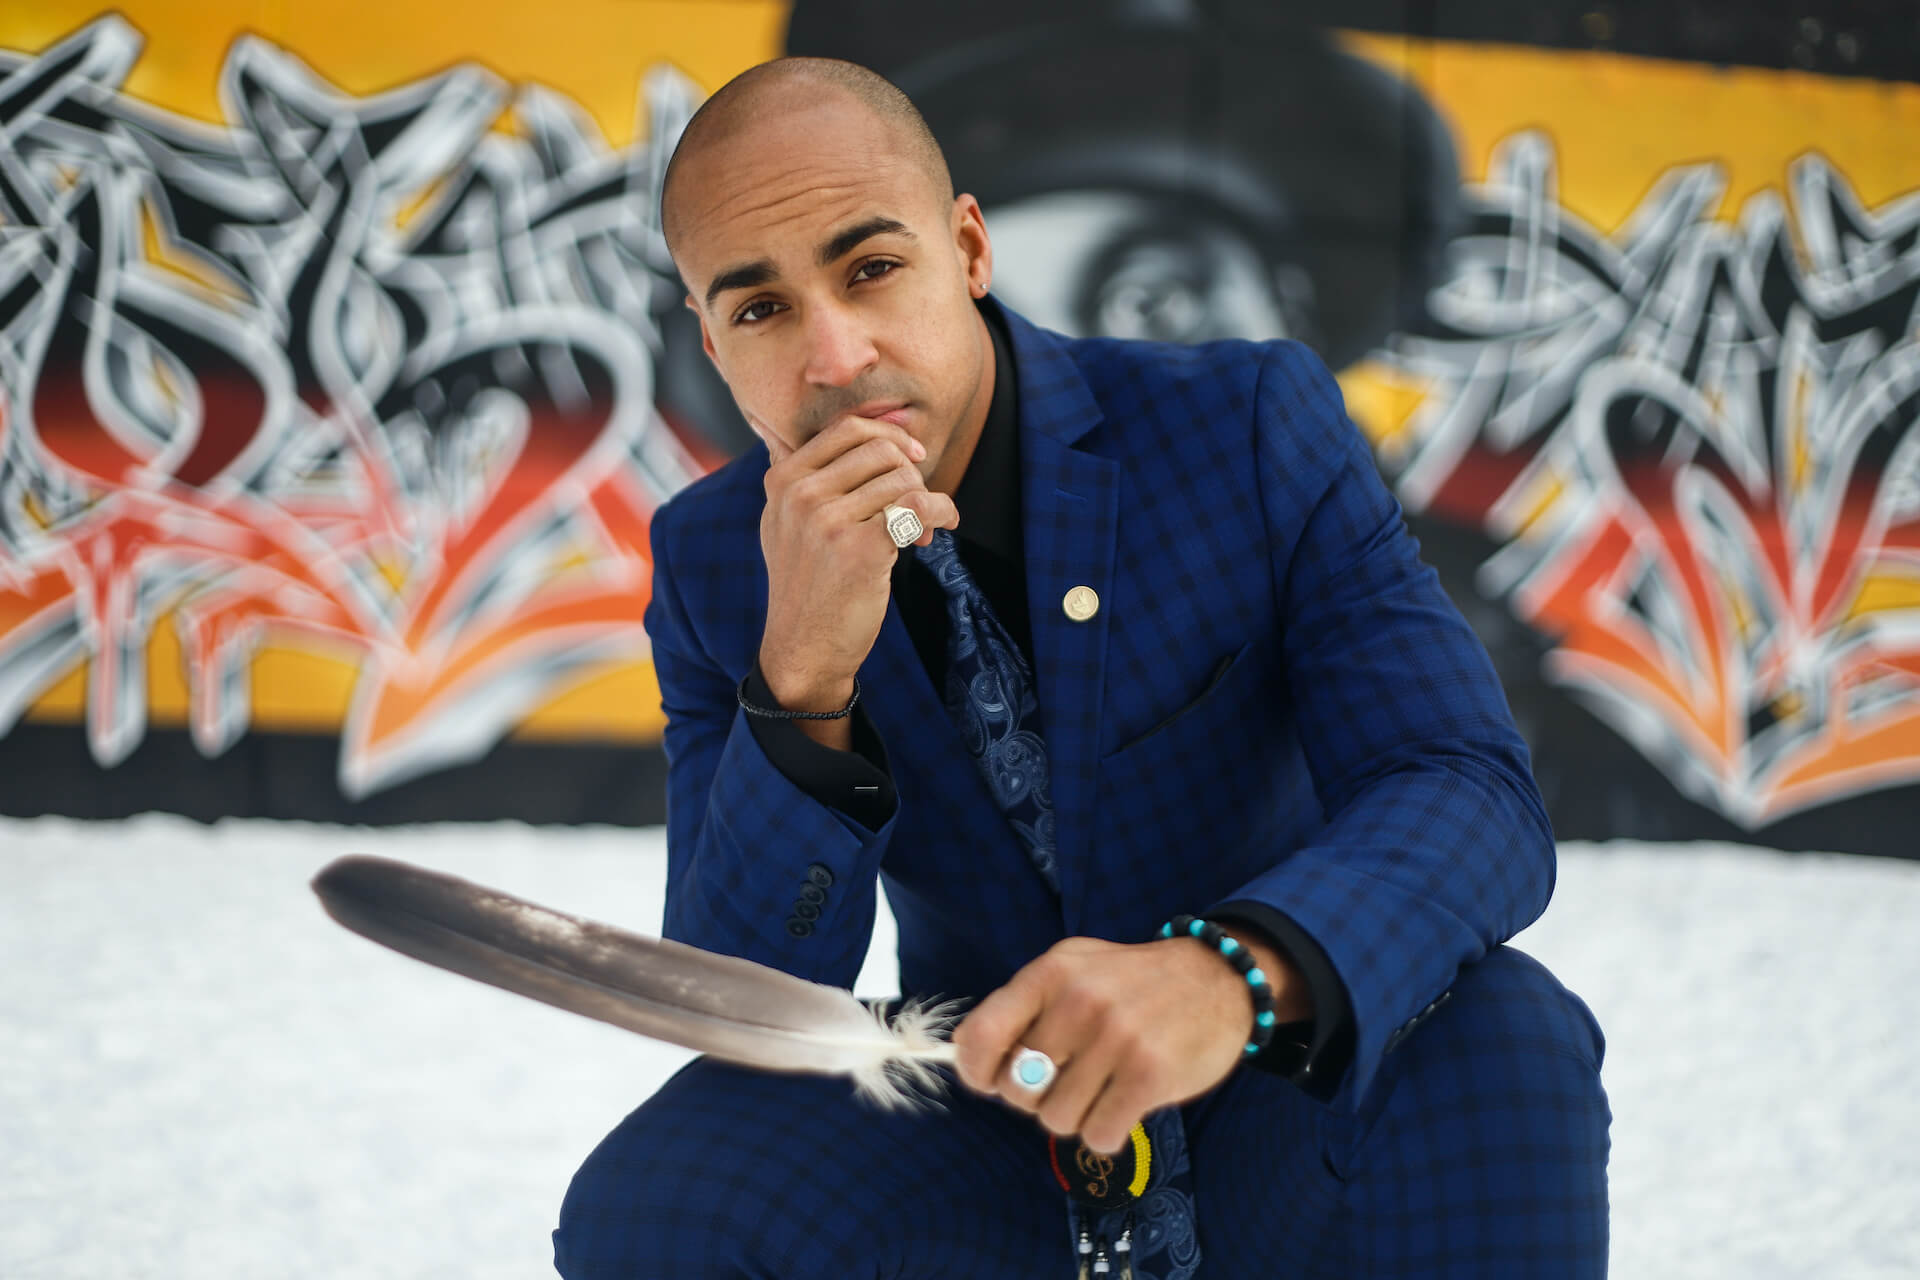 Close-up photo of Justin in a suit, in front of a wall of graffiti, holding a feather